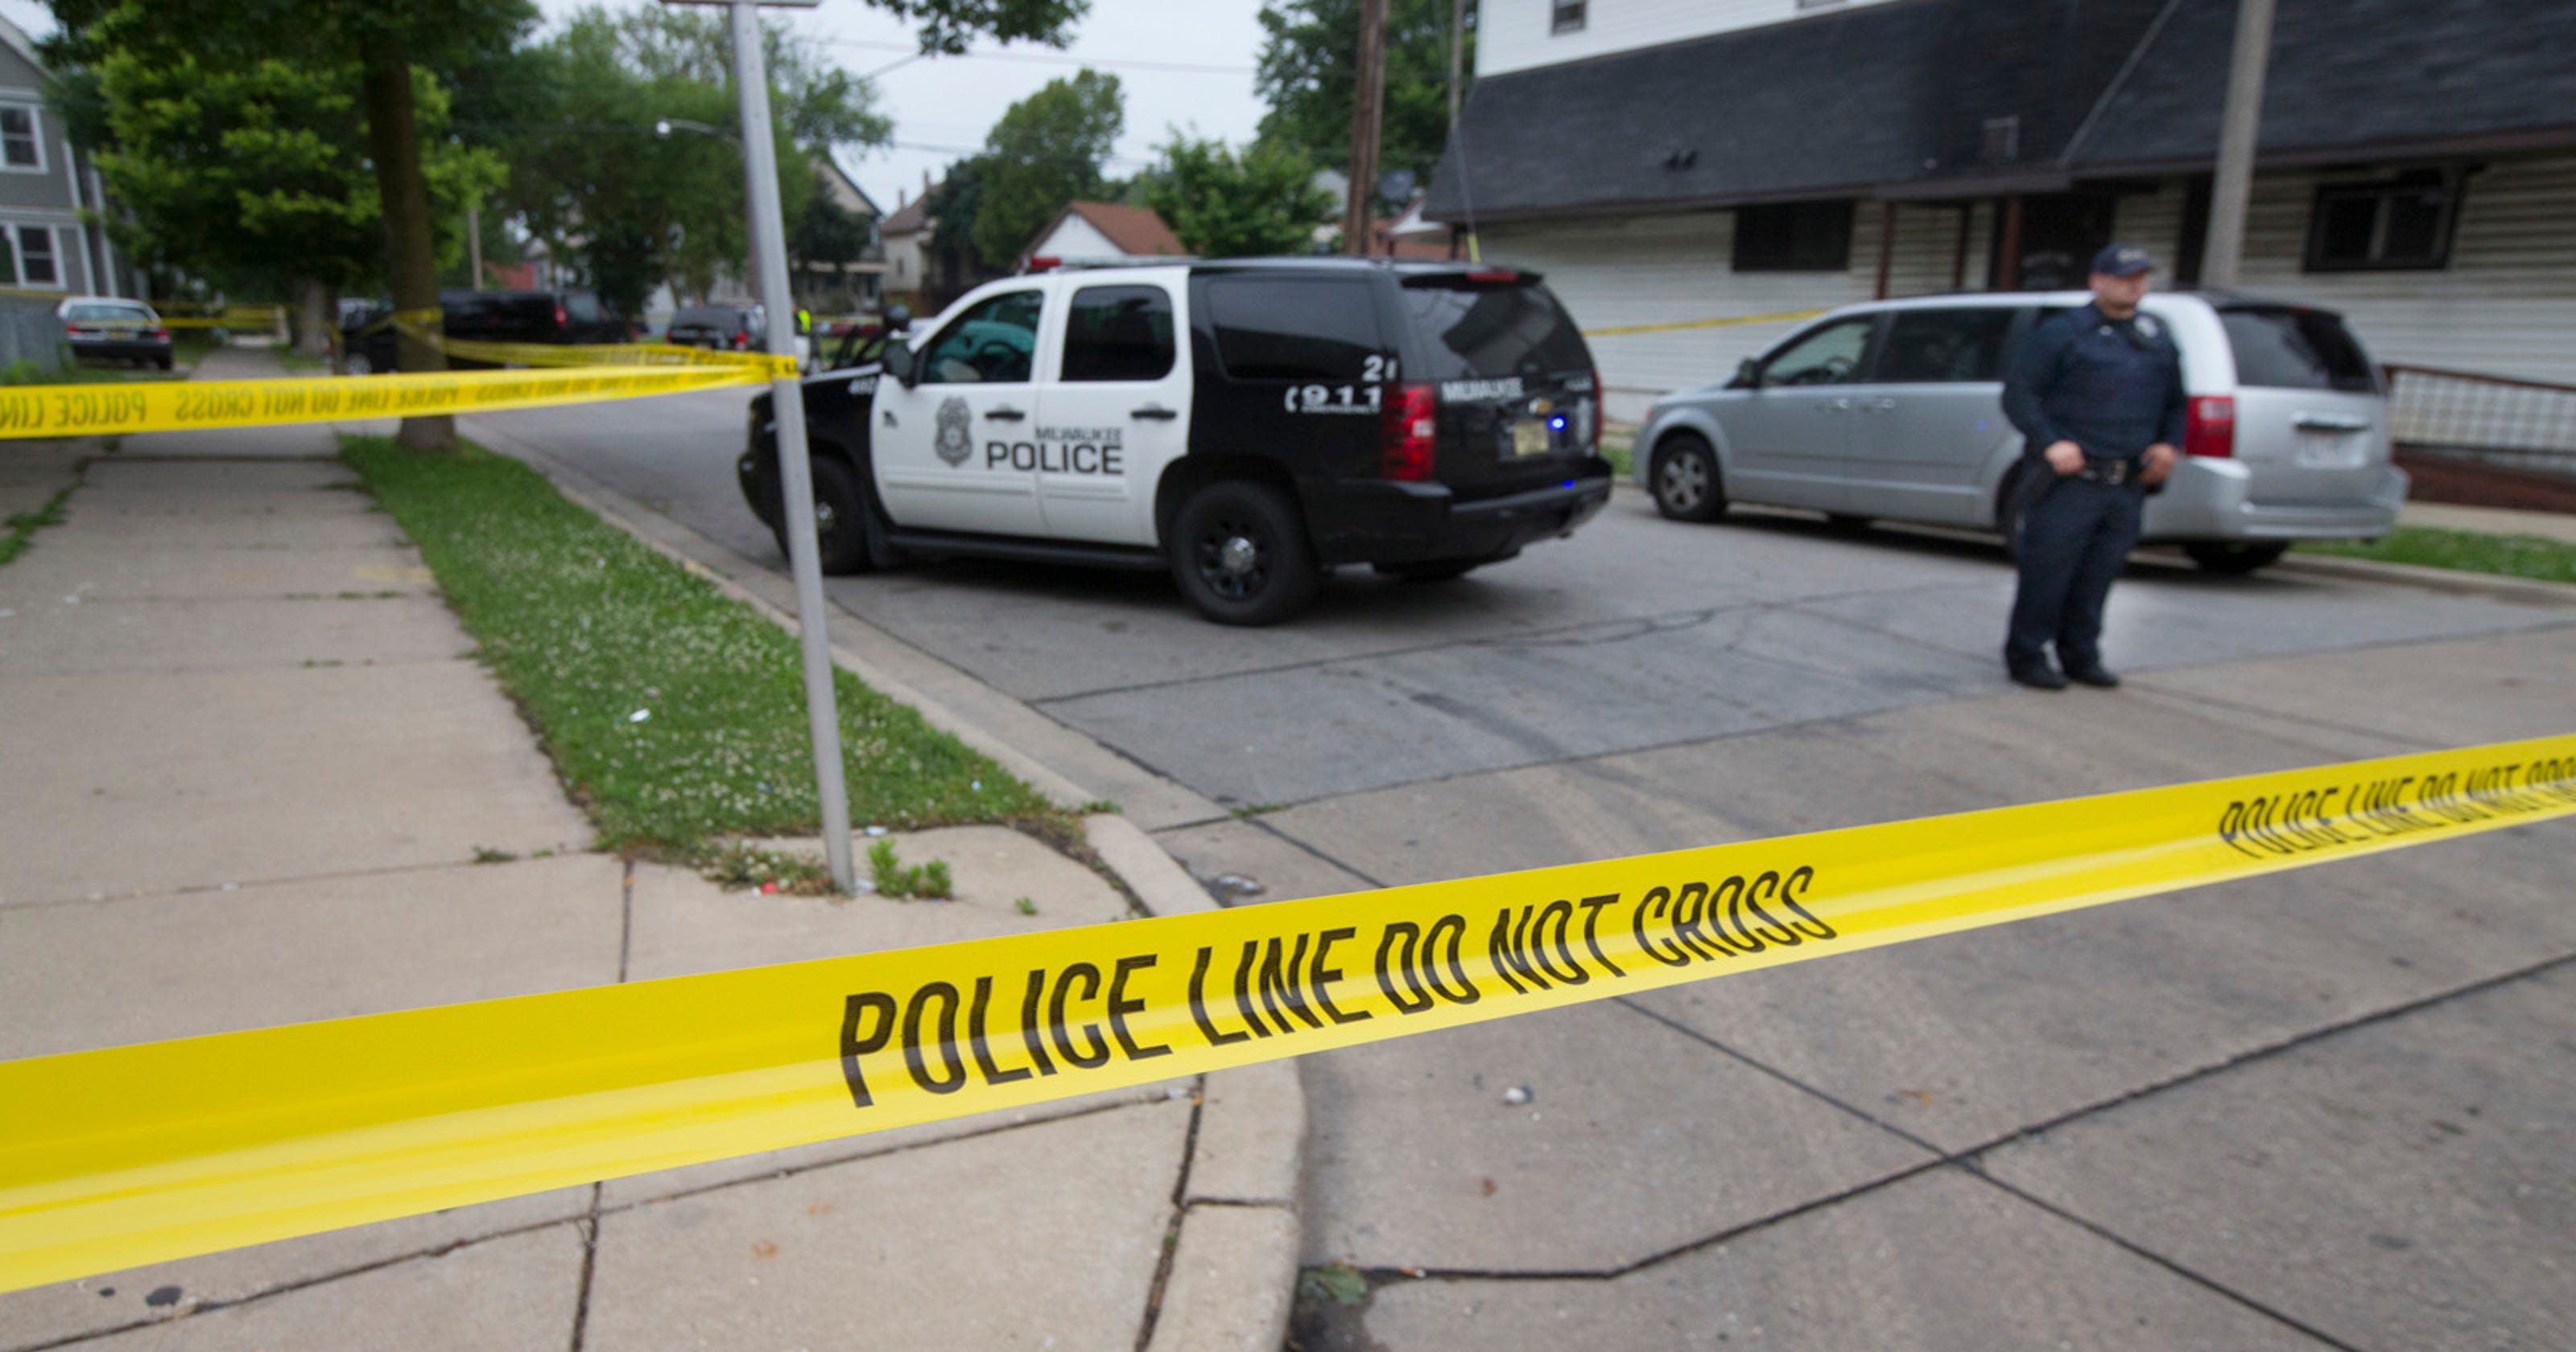 What drove the homicide spike in Milwaukee and other cities? A new study suggests opioids played a key role